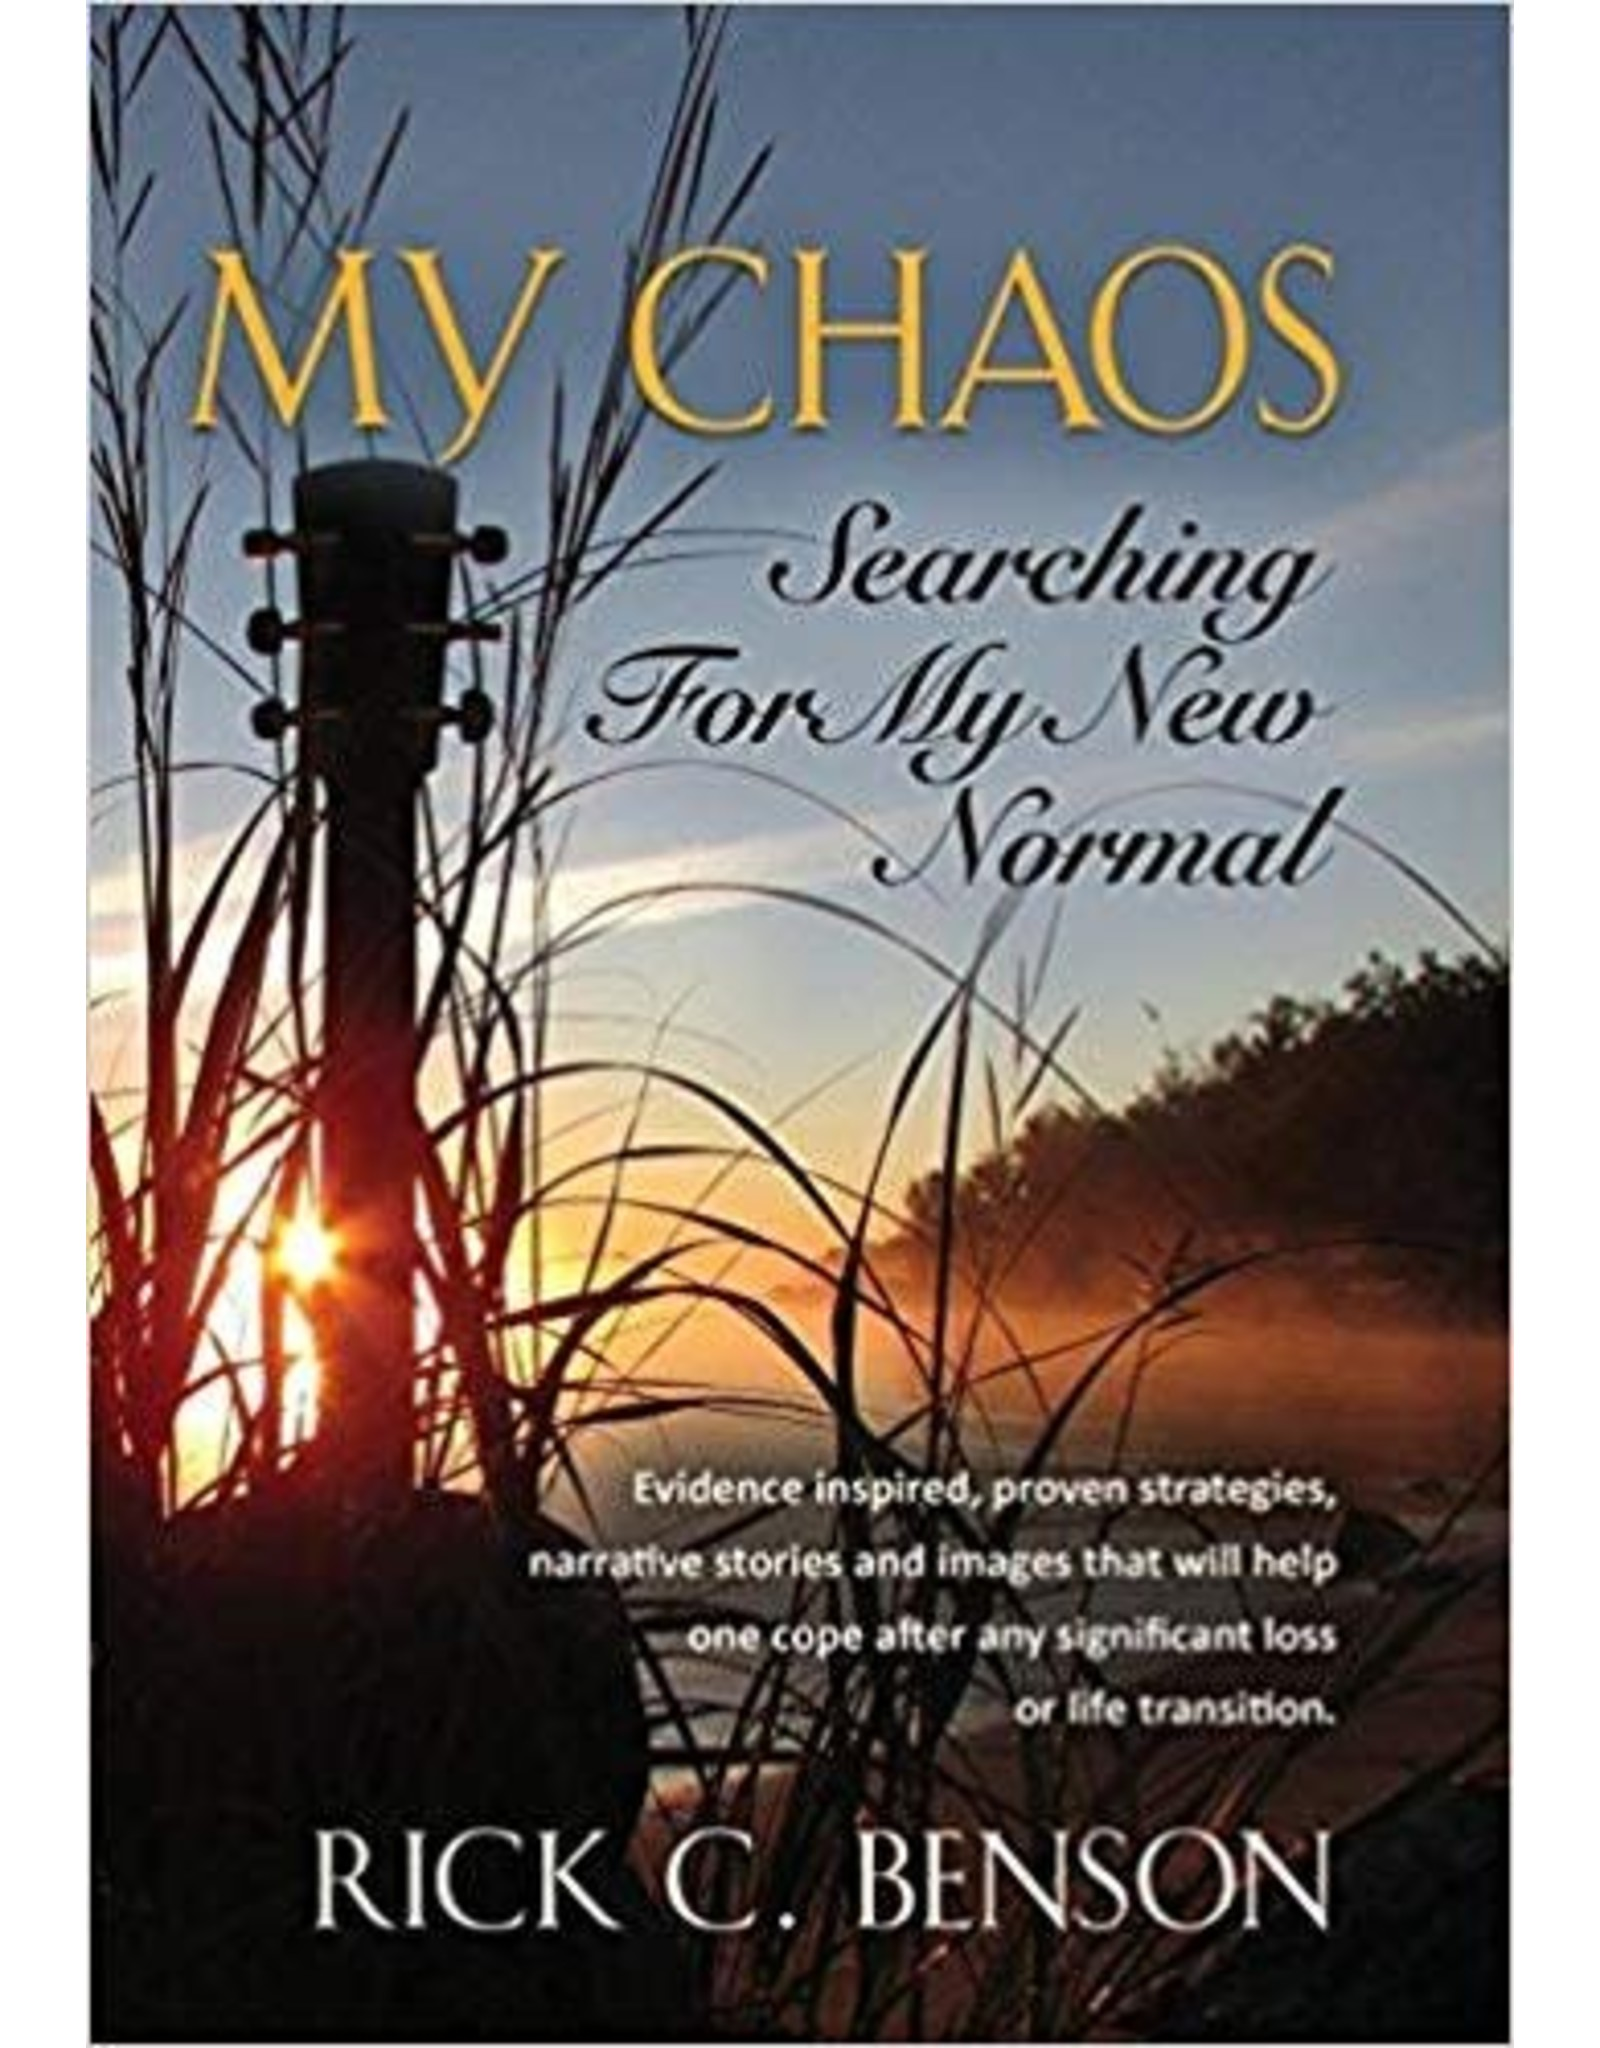 My Chaos: Searching for My New Normal S18